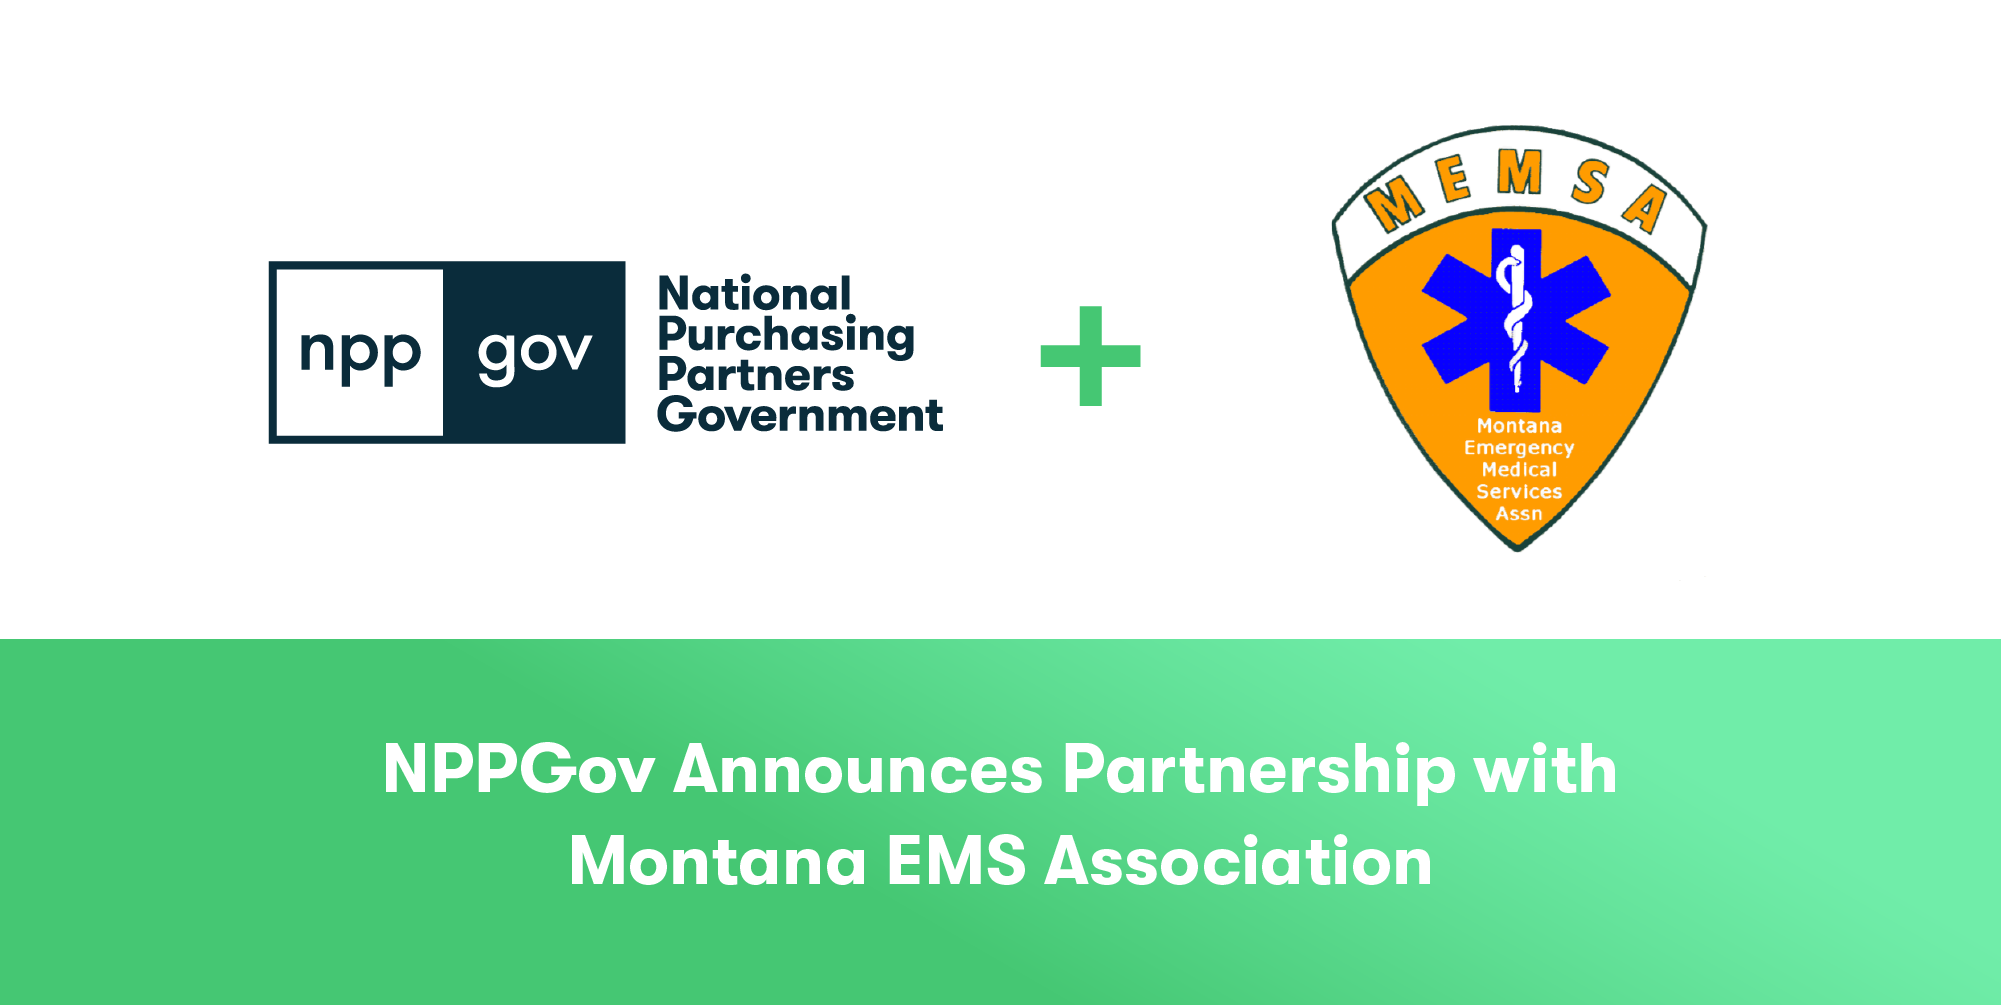 NPPGov Partners With Montana EMS Association